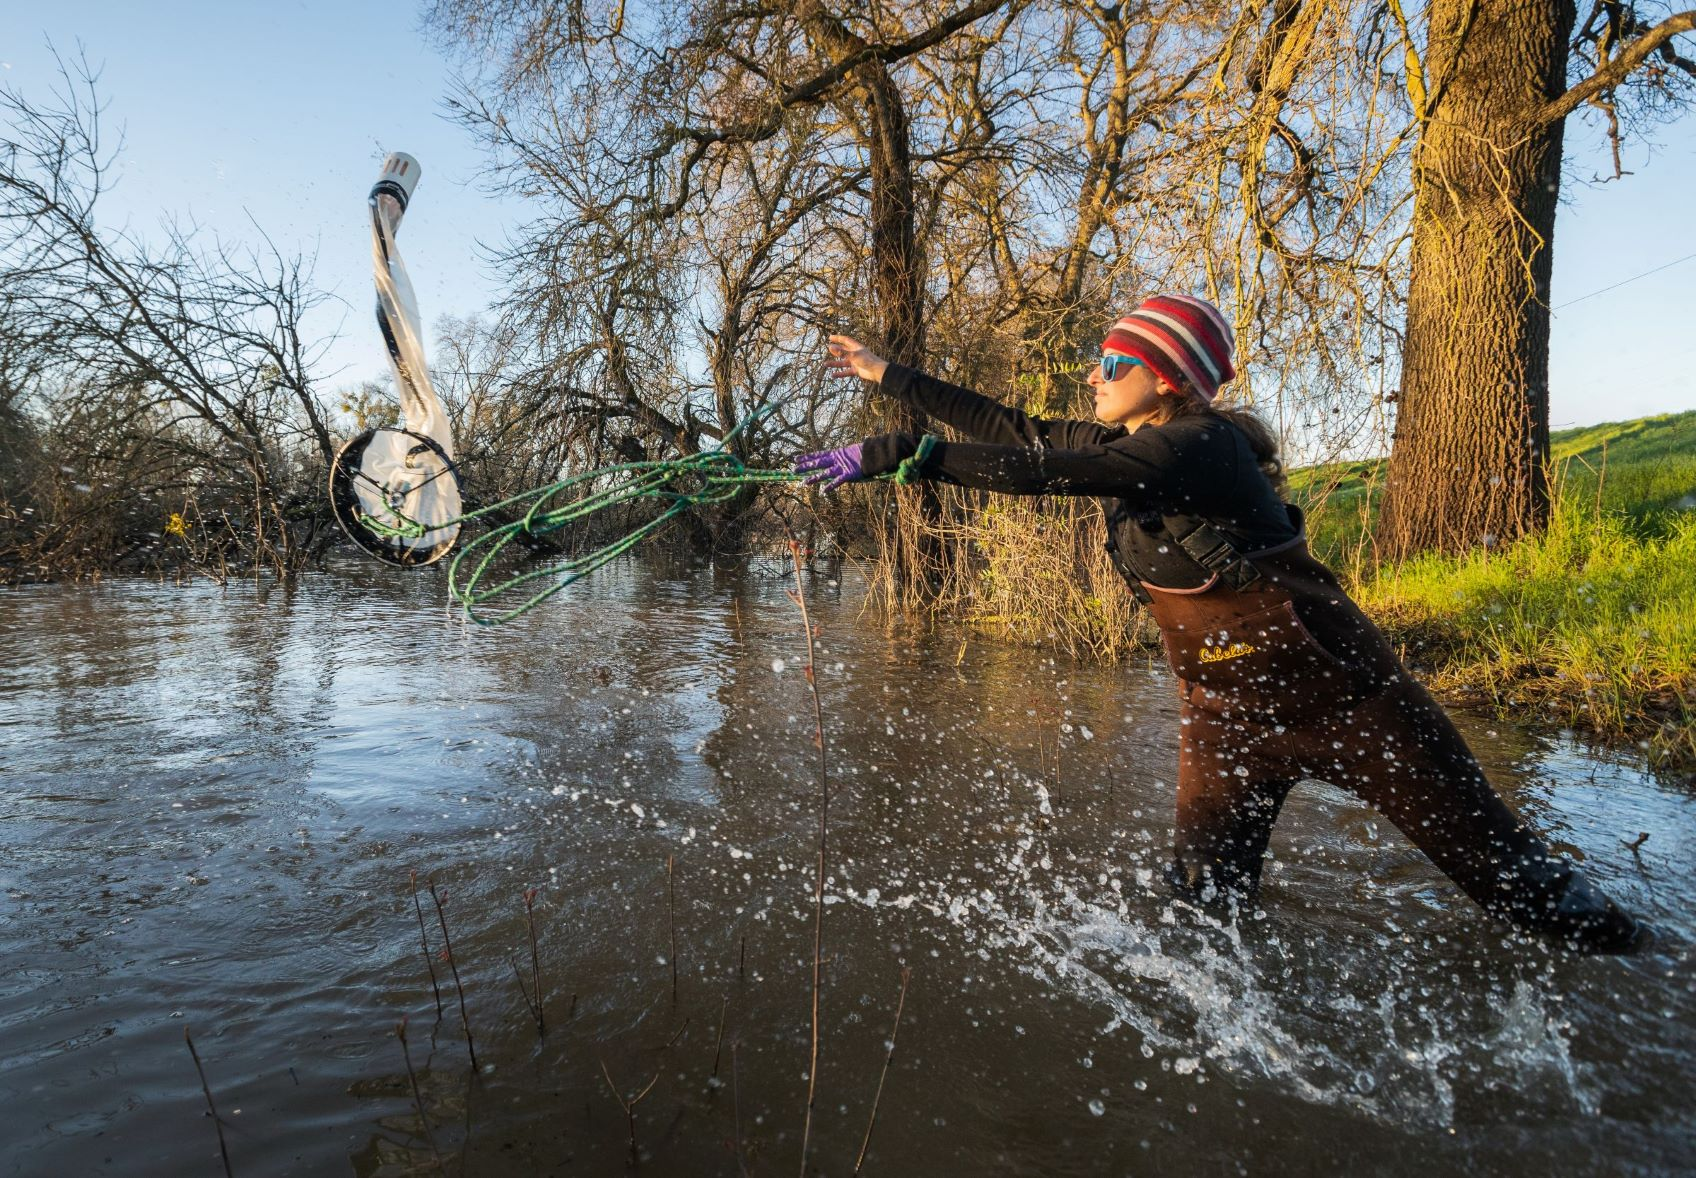 Person throwing net in river